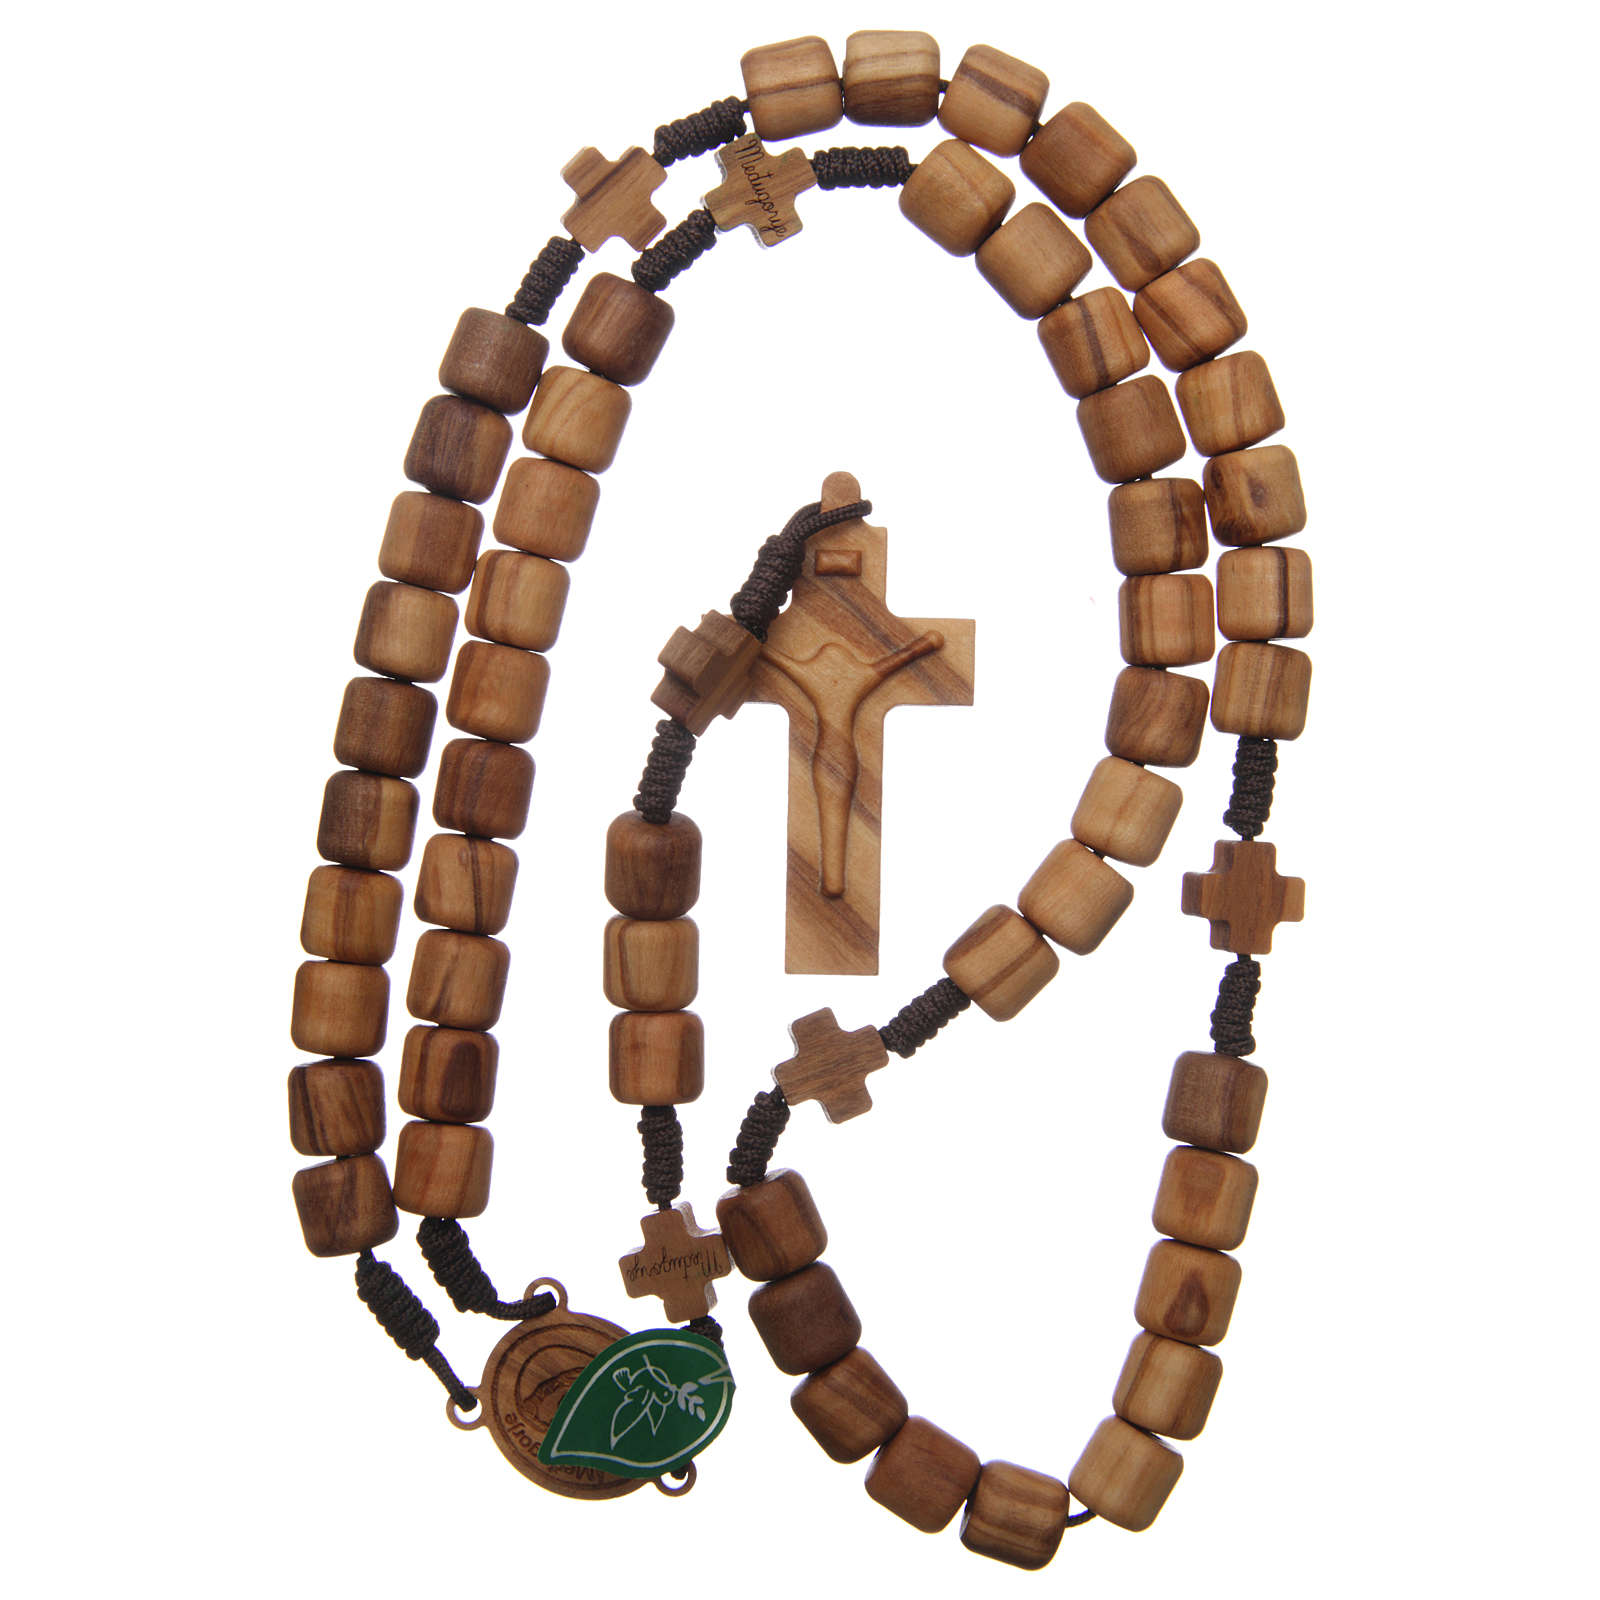 Medjugorje rosary with crosses, olive wood grains and brown rope 4